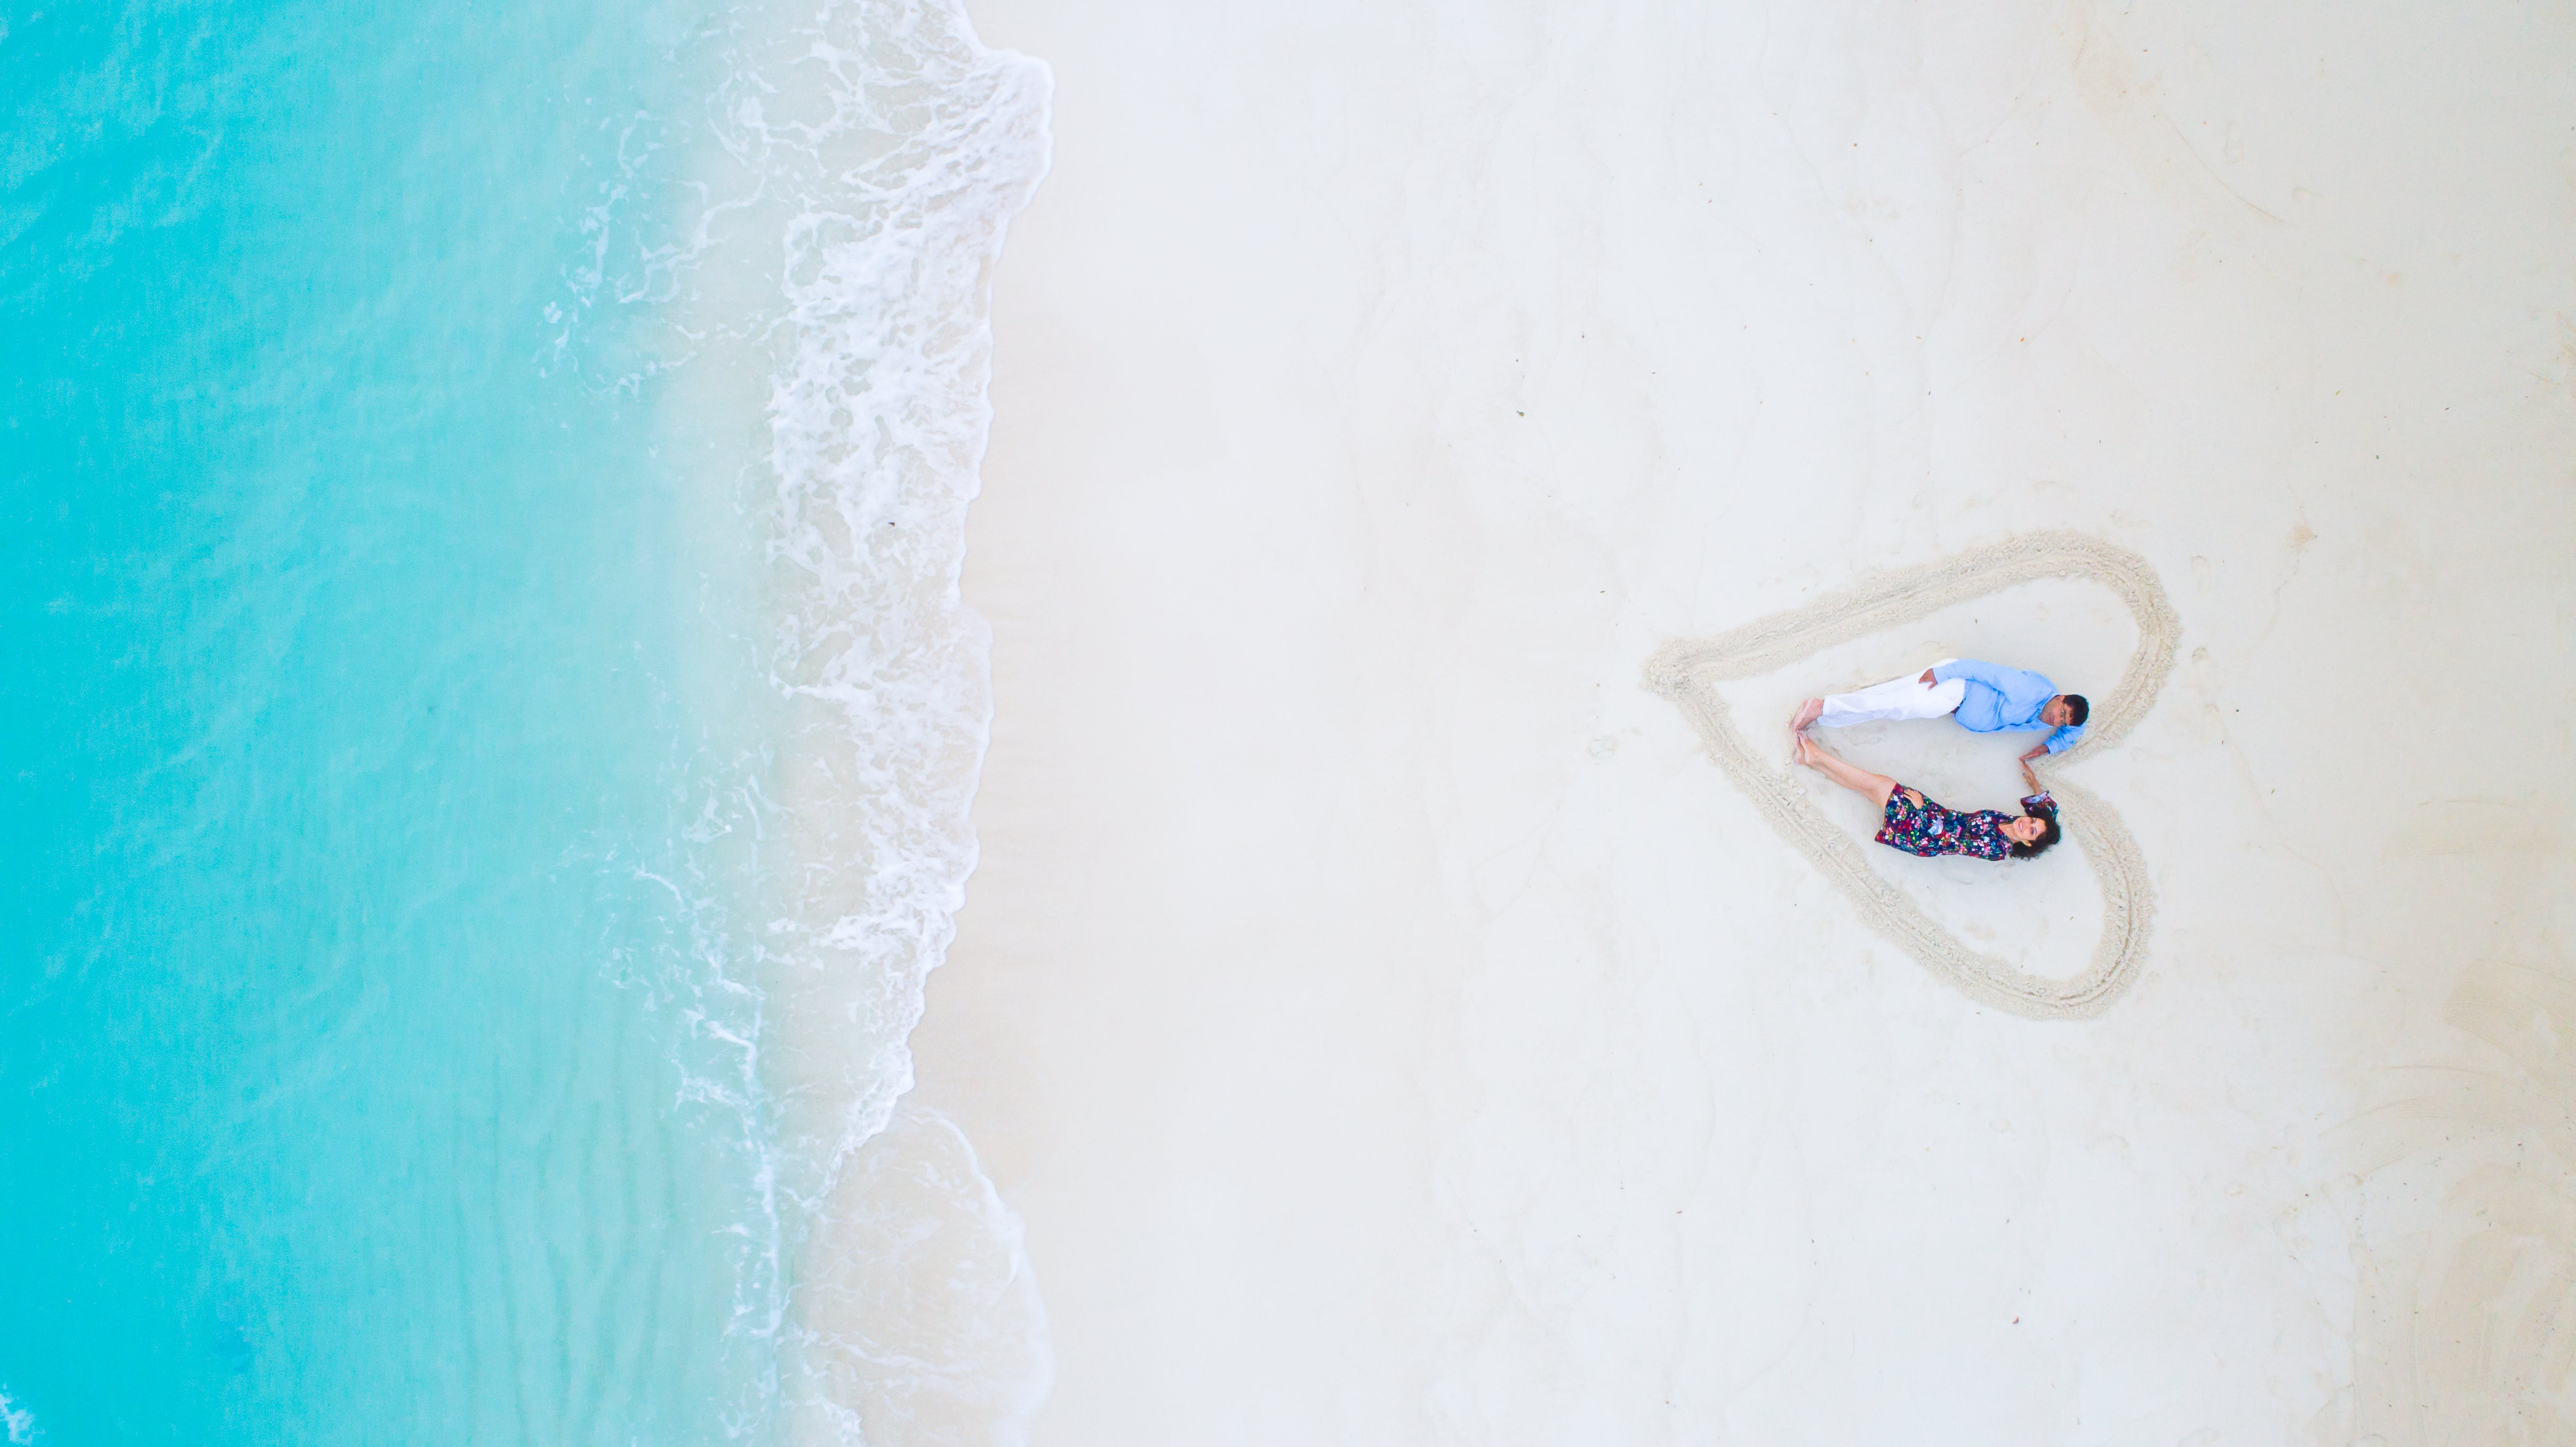 aerial view, affection, beach